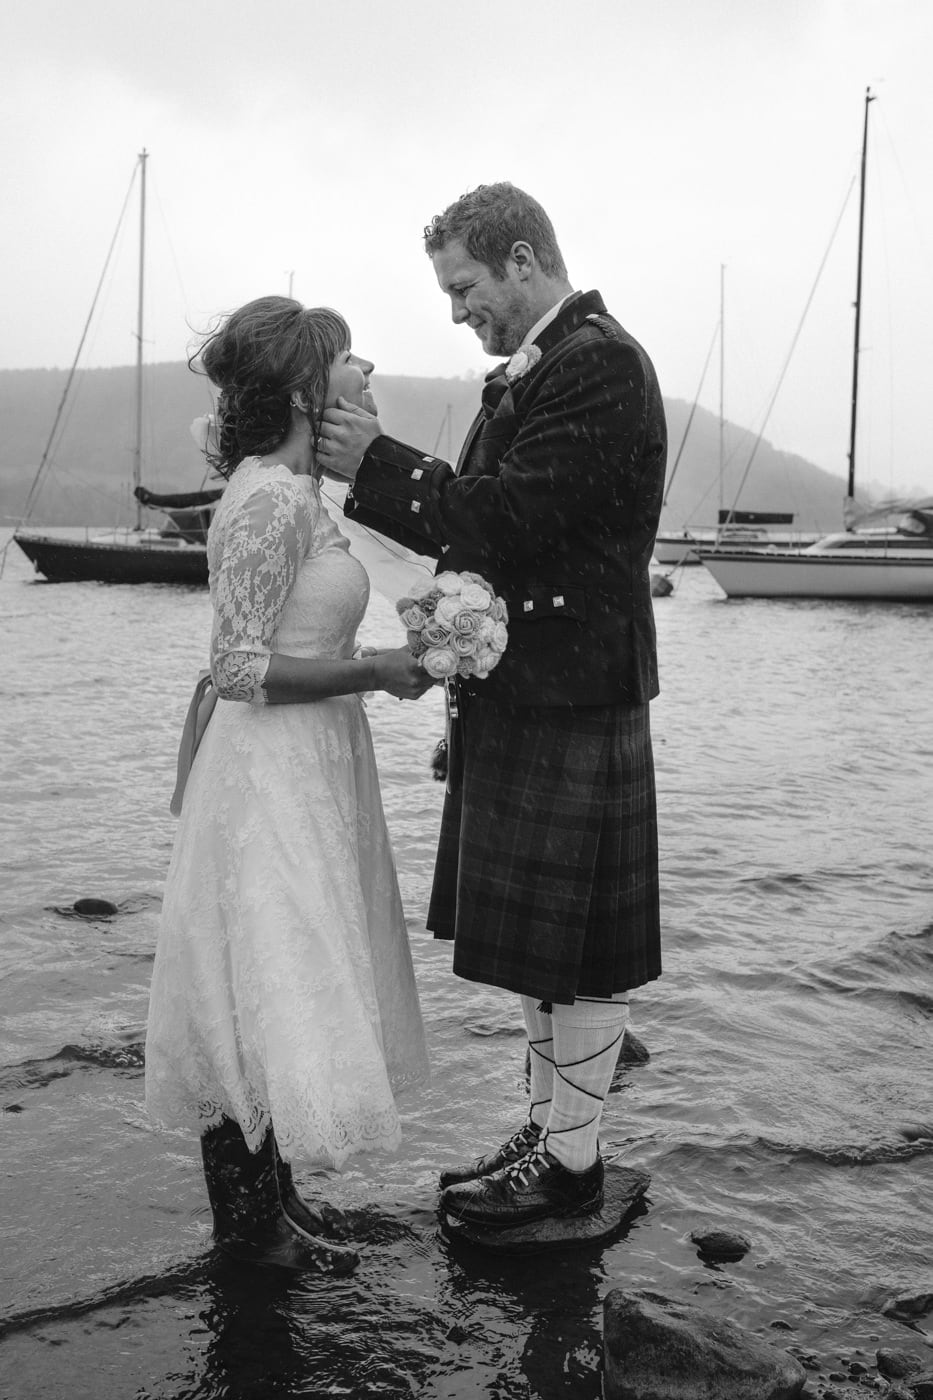 By the Lakeside, Bride and Groom Portrait